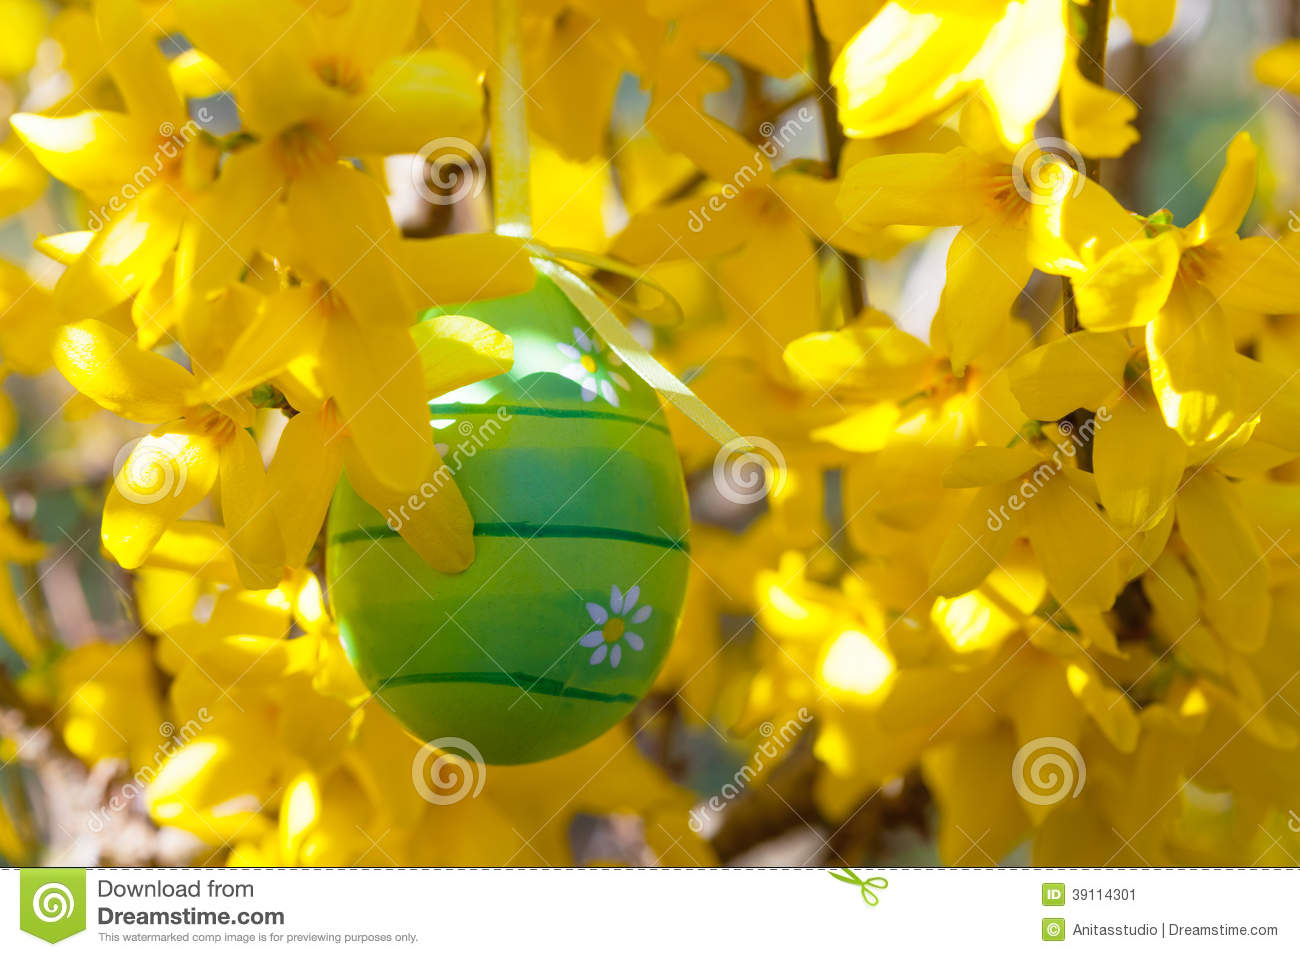 Easter egg hanging on a branch with yellow flowers stock image download easter egg hanging on a branch with yellow flowers stock image image of forsythia mightylinksfo